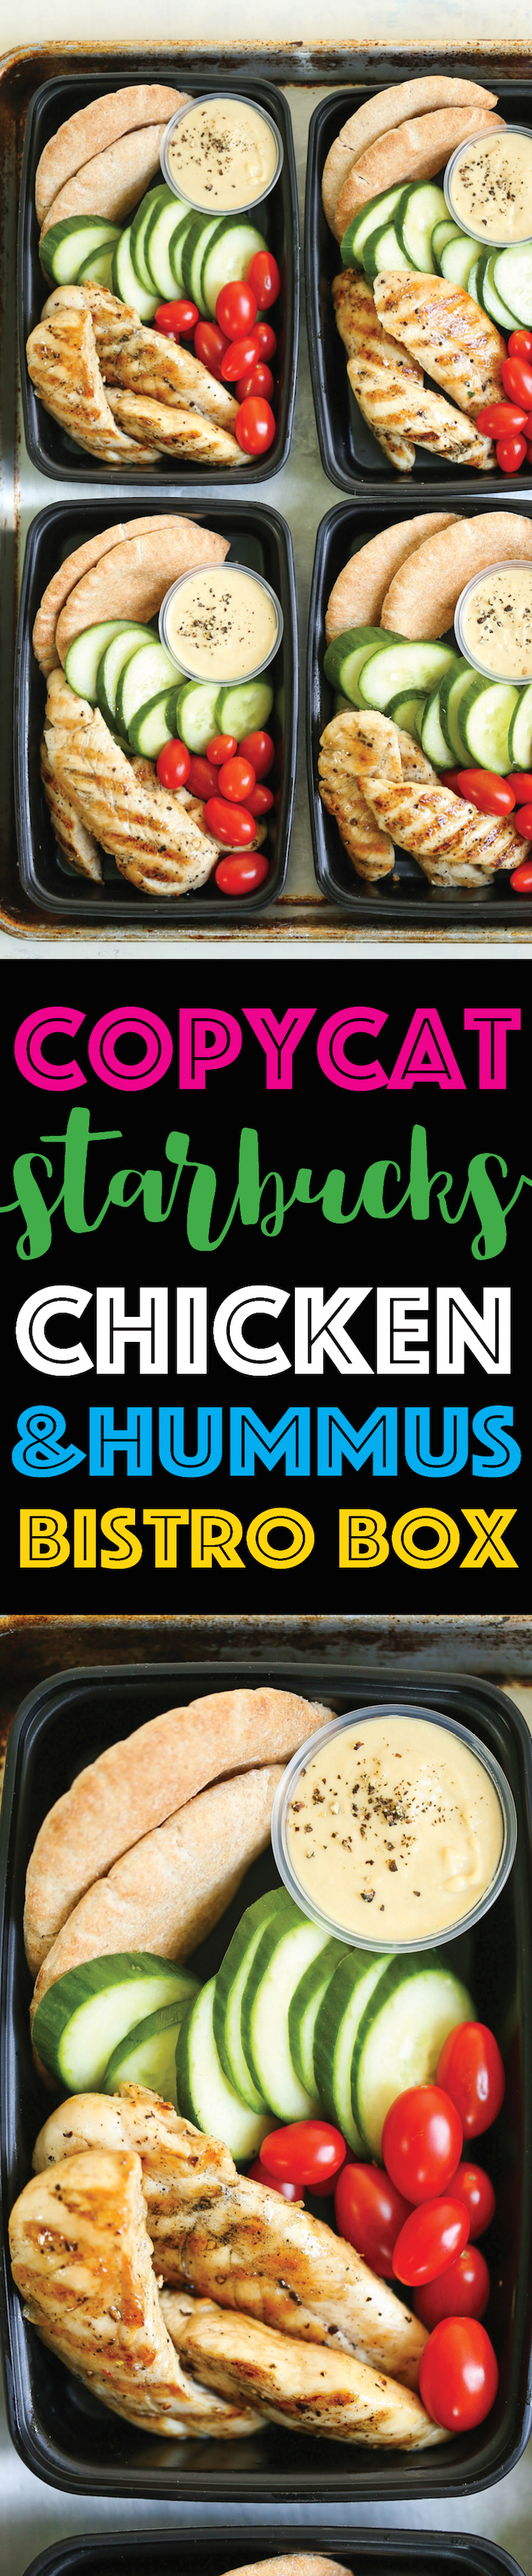 Copycat Starbucks Chicken and Hummus Bistro Box -Meal prep for the week ahead!!! Filled with hummus, chicken strips, cucumber, tomatoes and wheat pita.